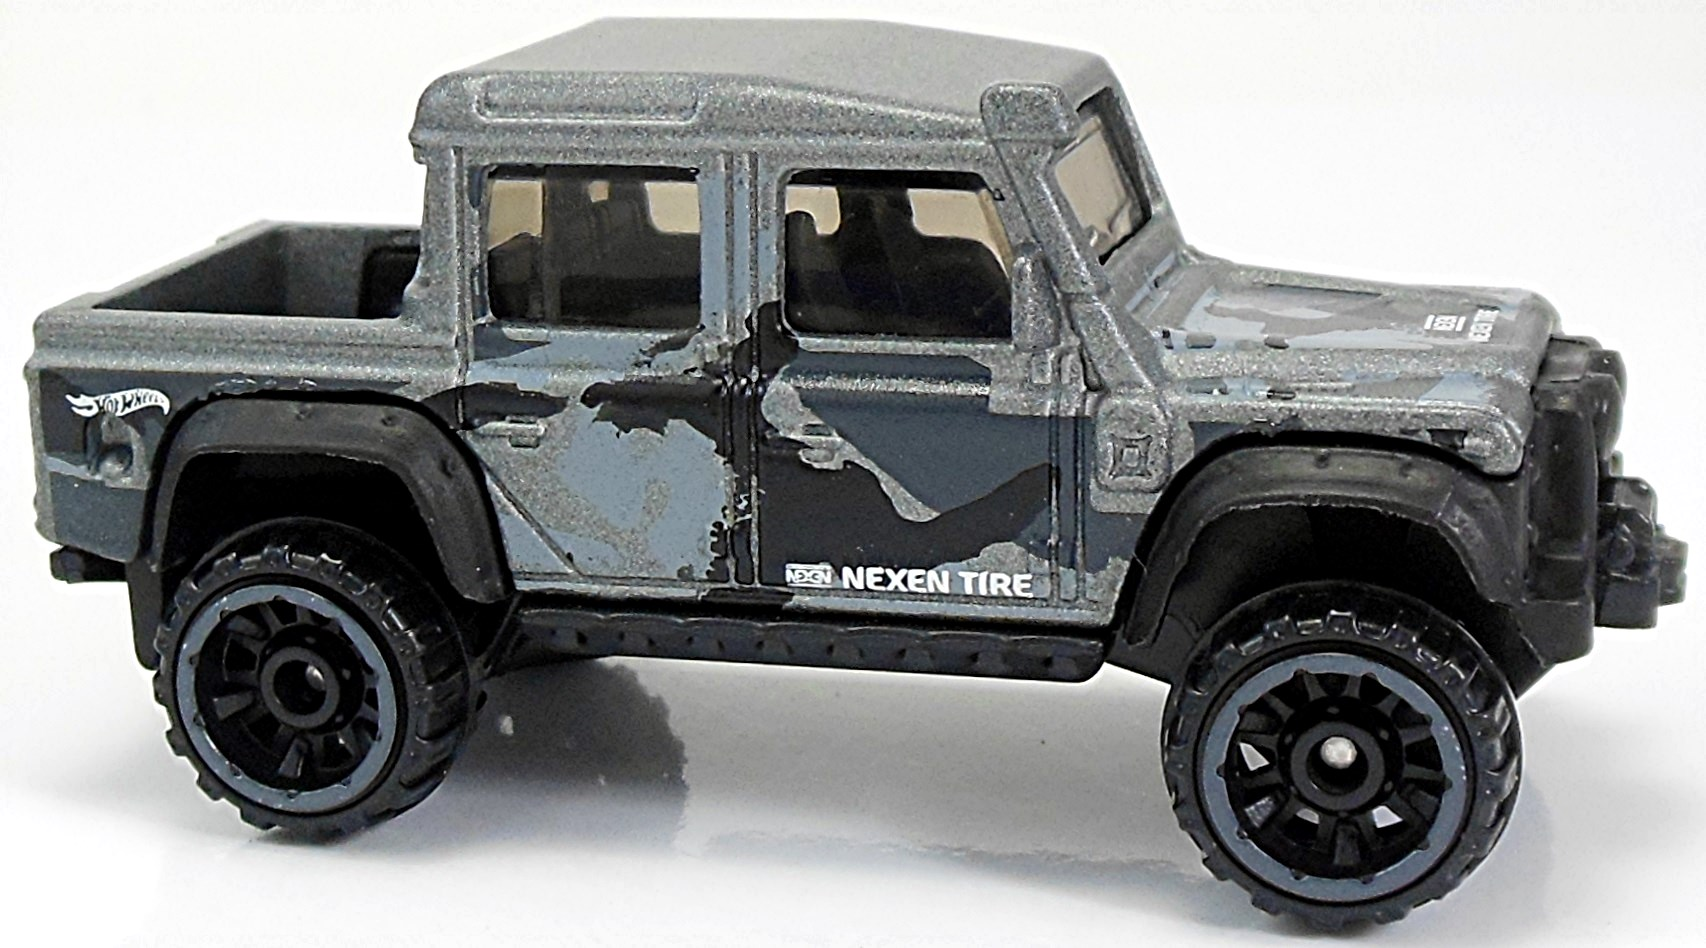 15 land rover defender double cab - 67mm - 2018 | hot wheels newsletter